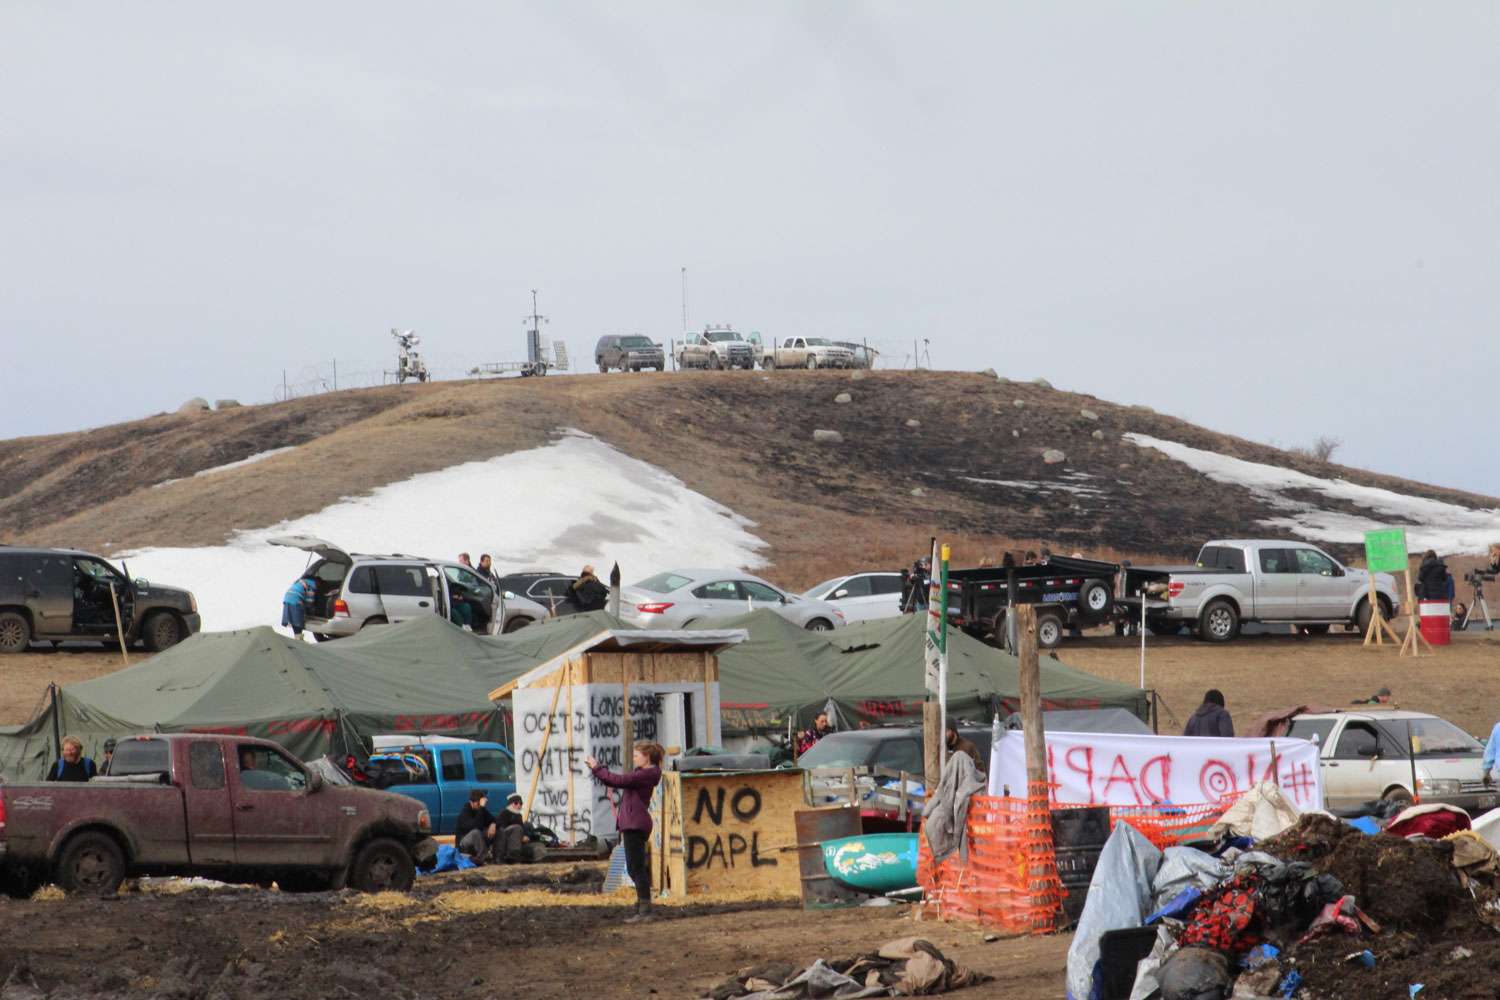 Enforcement overlooking the Oceti Sakowin camp.